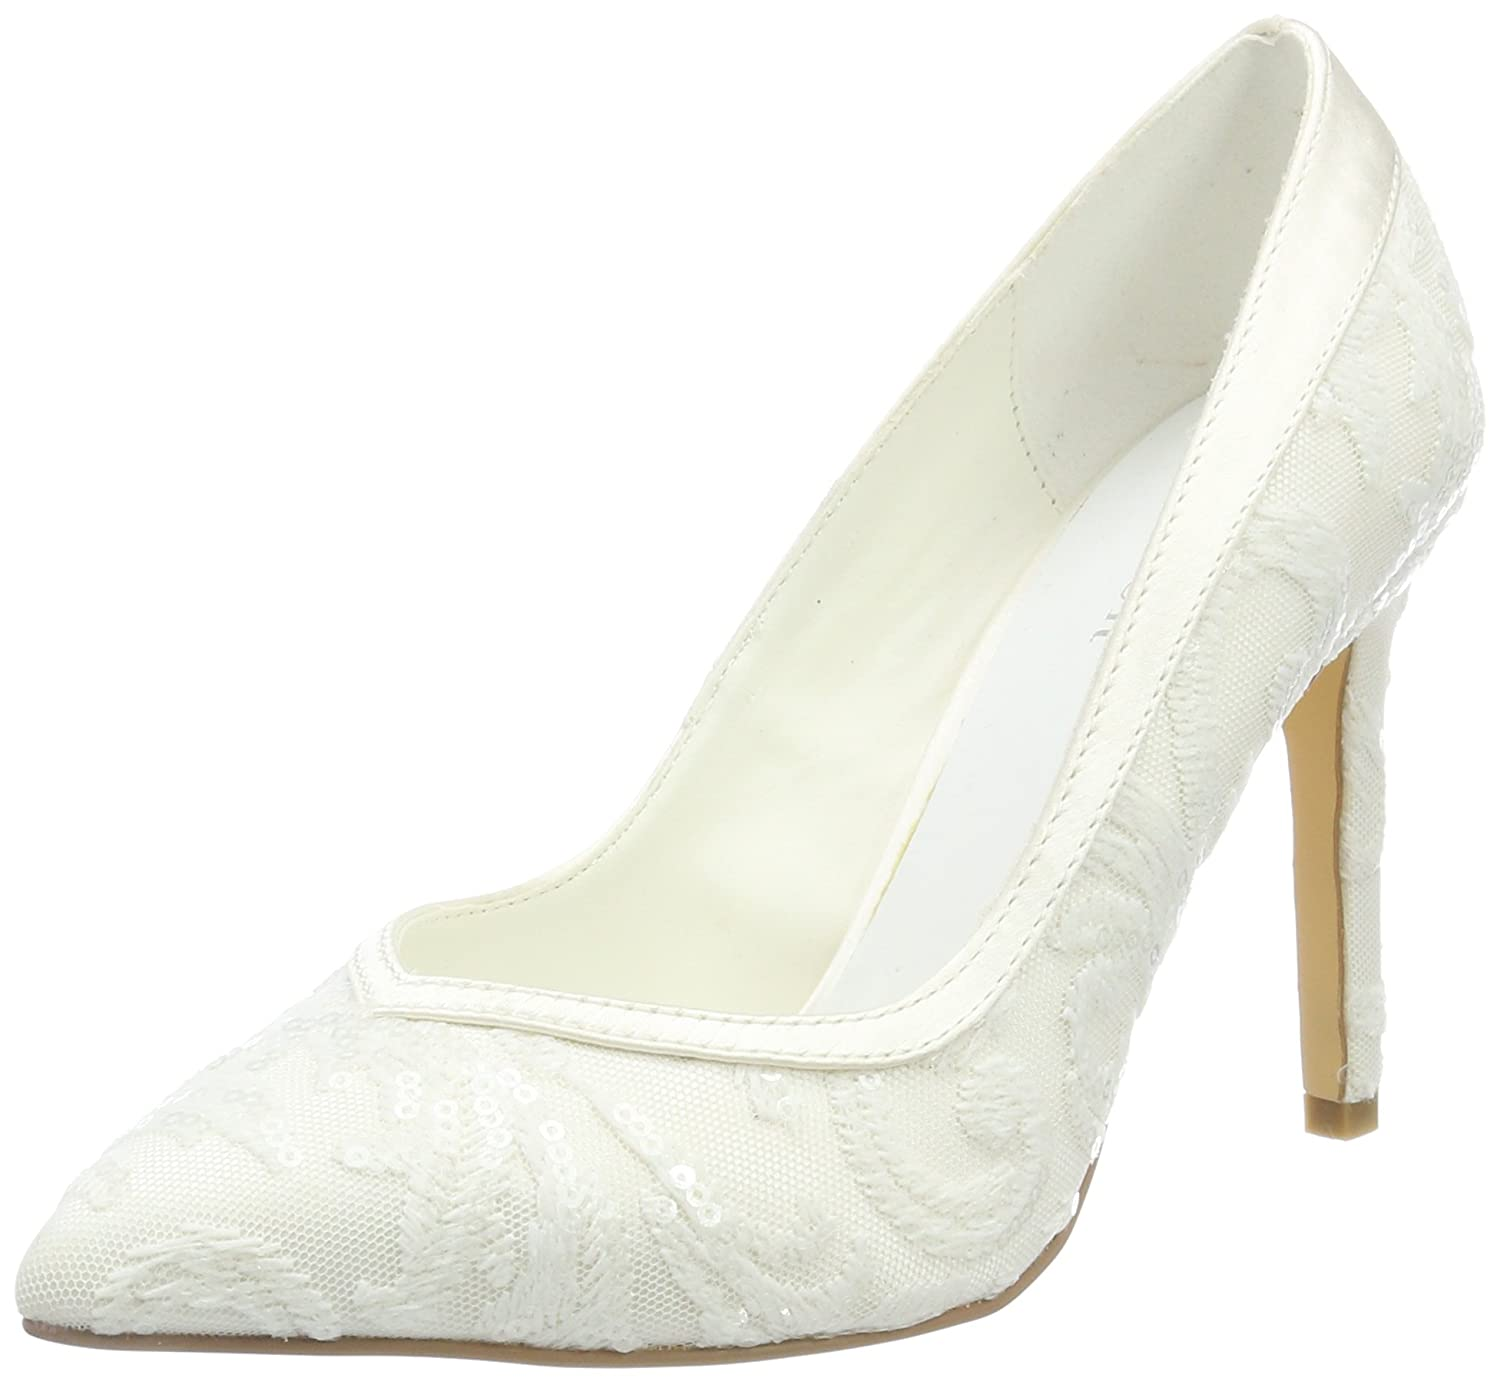 Elfenbein (Ivory) Menbur Wedding Damen Giovanna Pumps